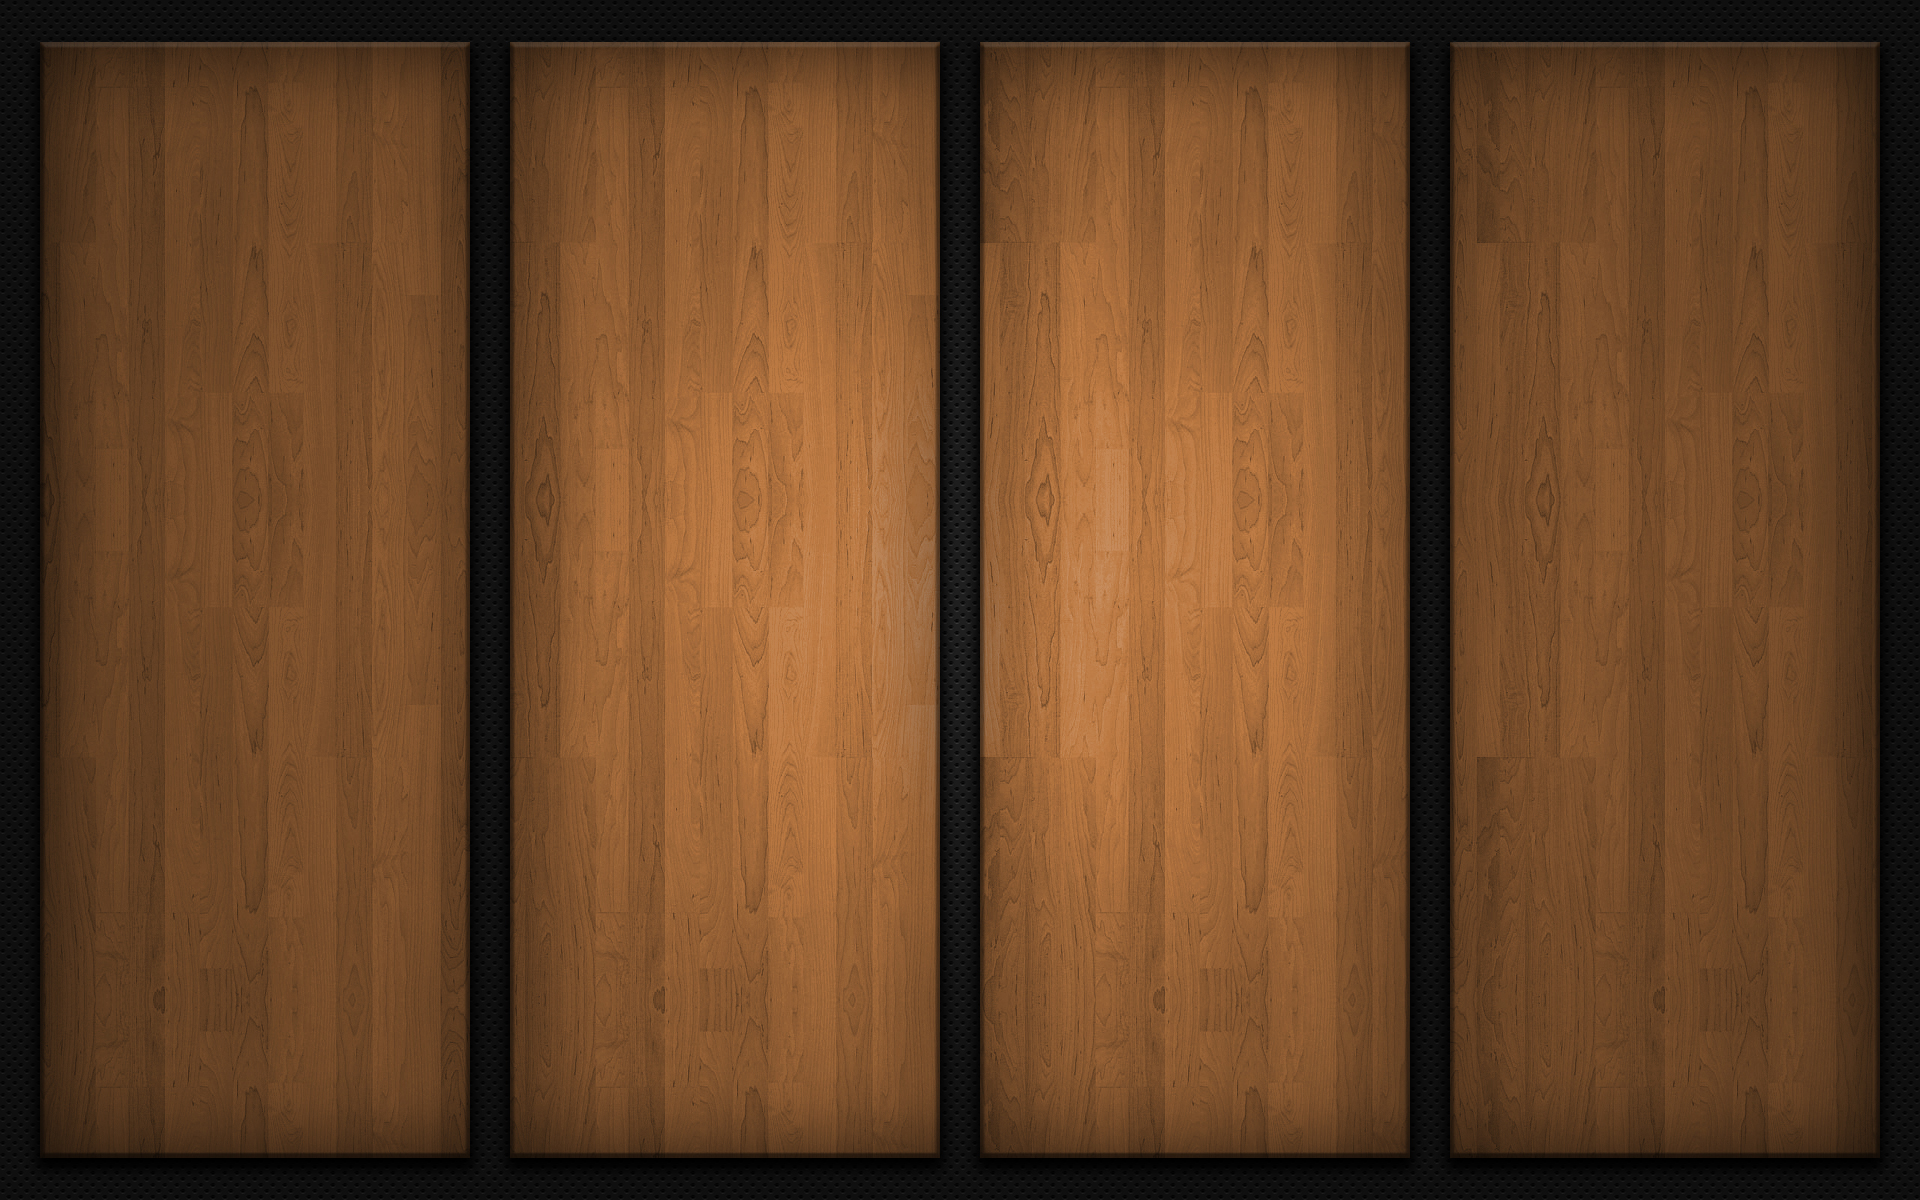 Holz full hd wallpaper and hintergrund 1920x1200 id 74164 for Holz wallpaper